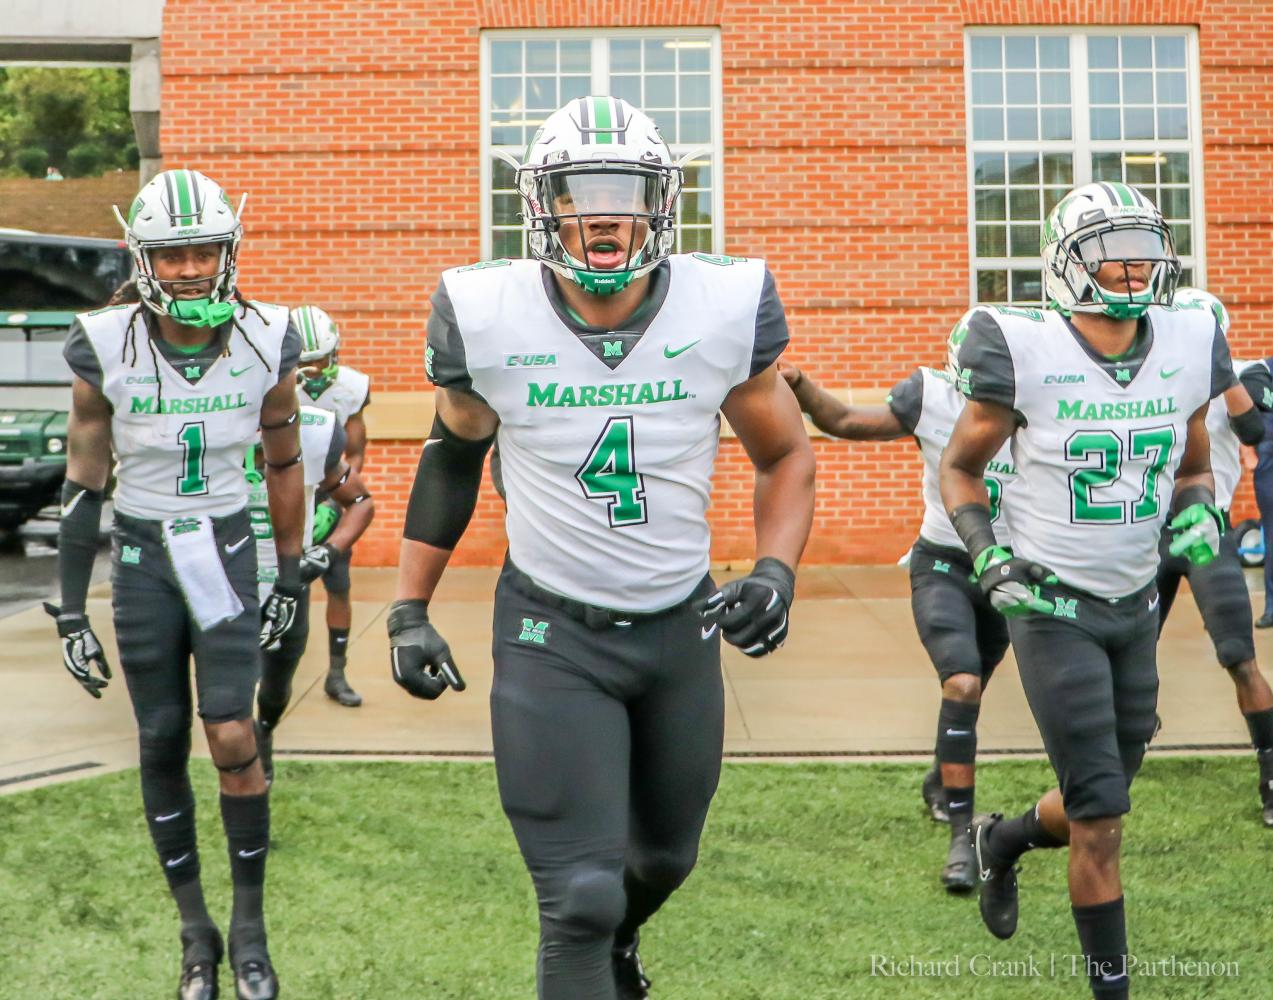 Junior linebacker Juwon Young enters the field at Jerry Richardson Stadium in Charlotte, North Carolina for his first game in a Thundering Herd uniform after serving a suspension for the first four games of the year.